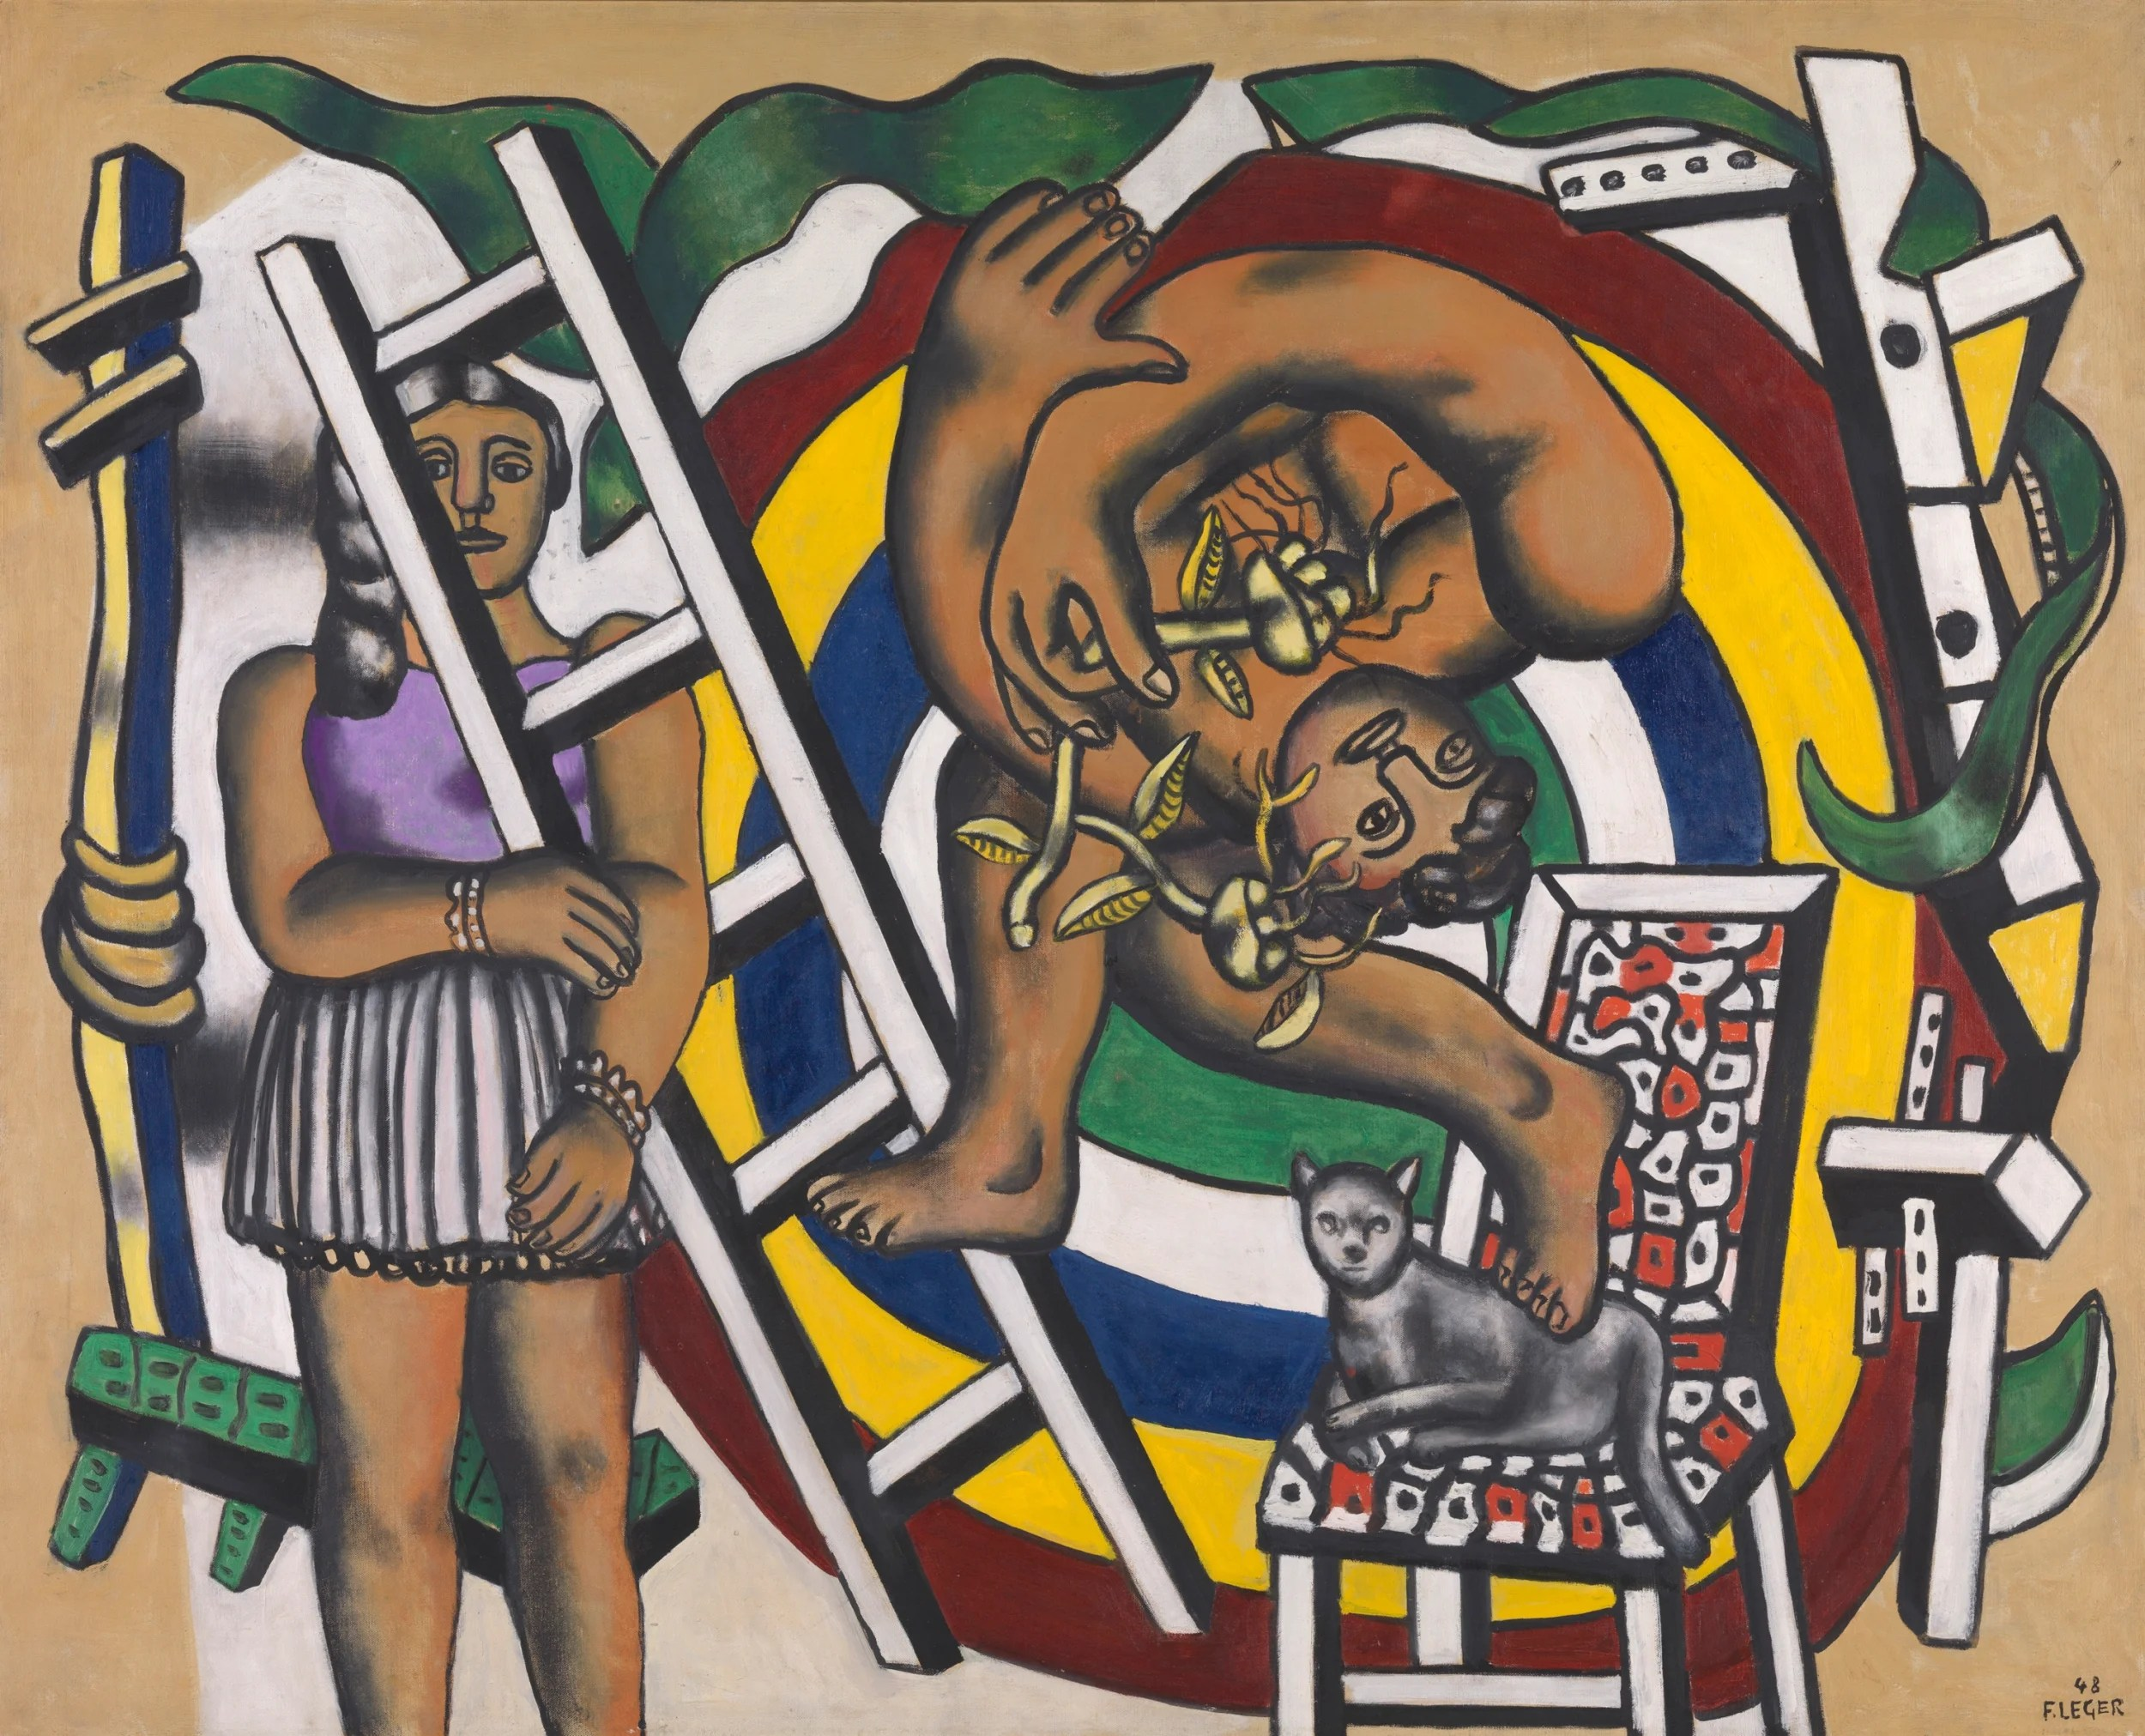 Arte Learn French Fernand Léger The French Artist Whose Abstract Mechanical